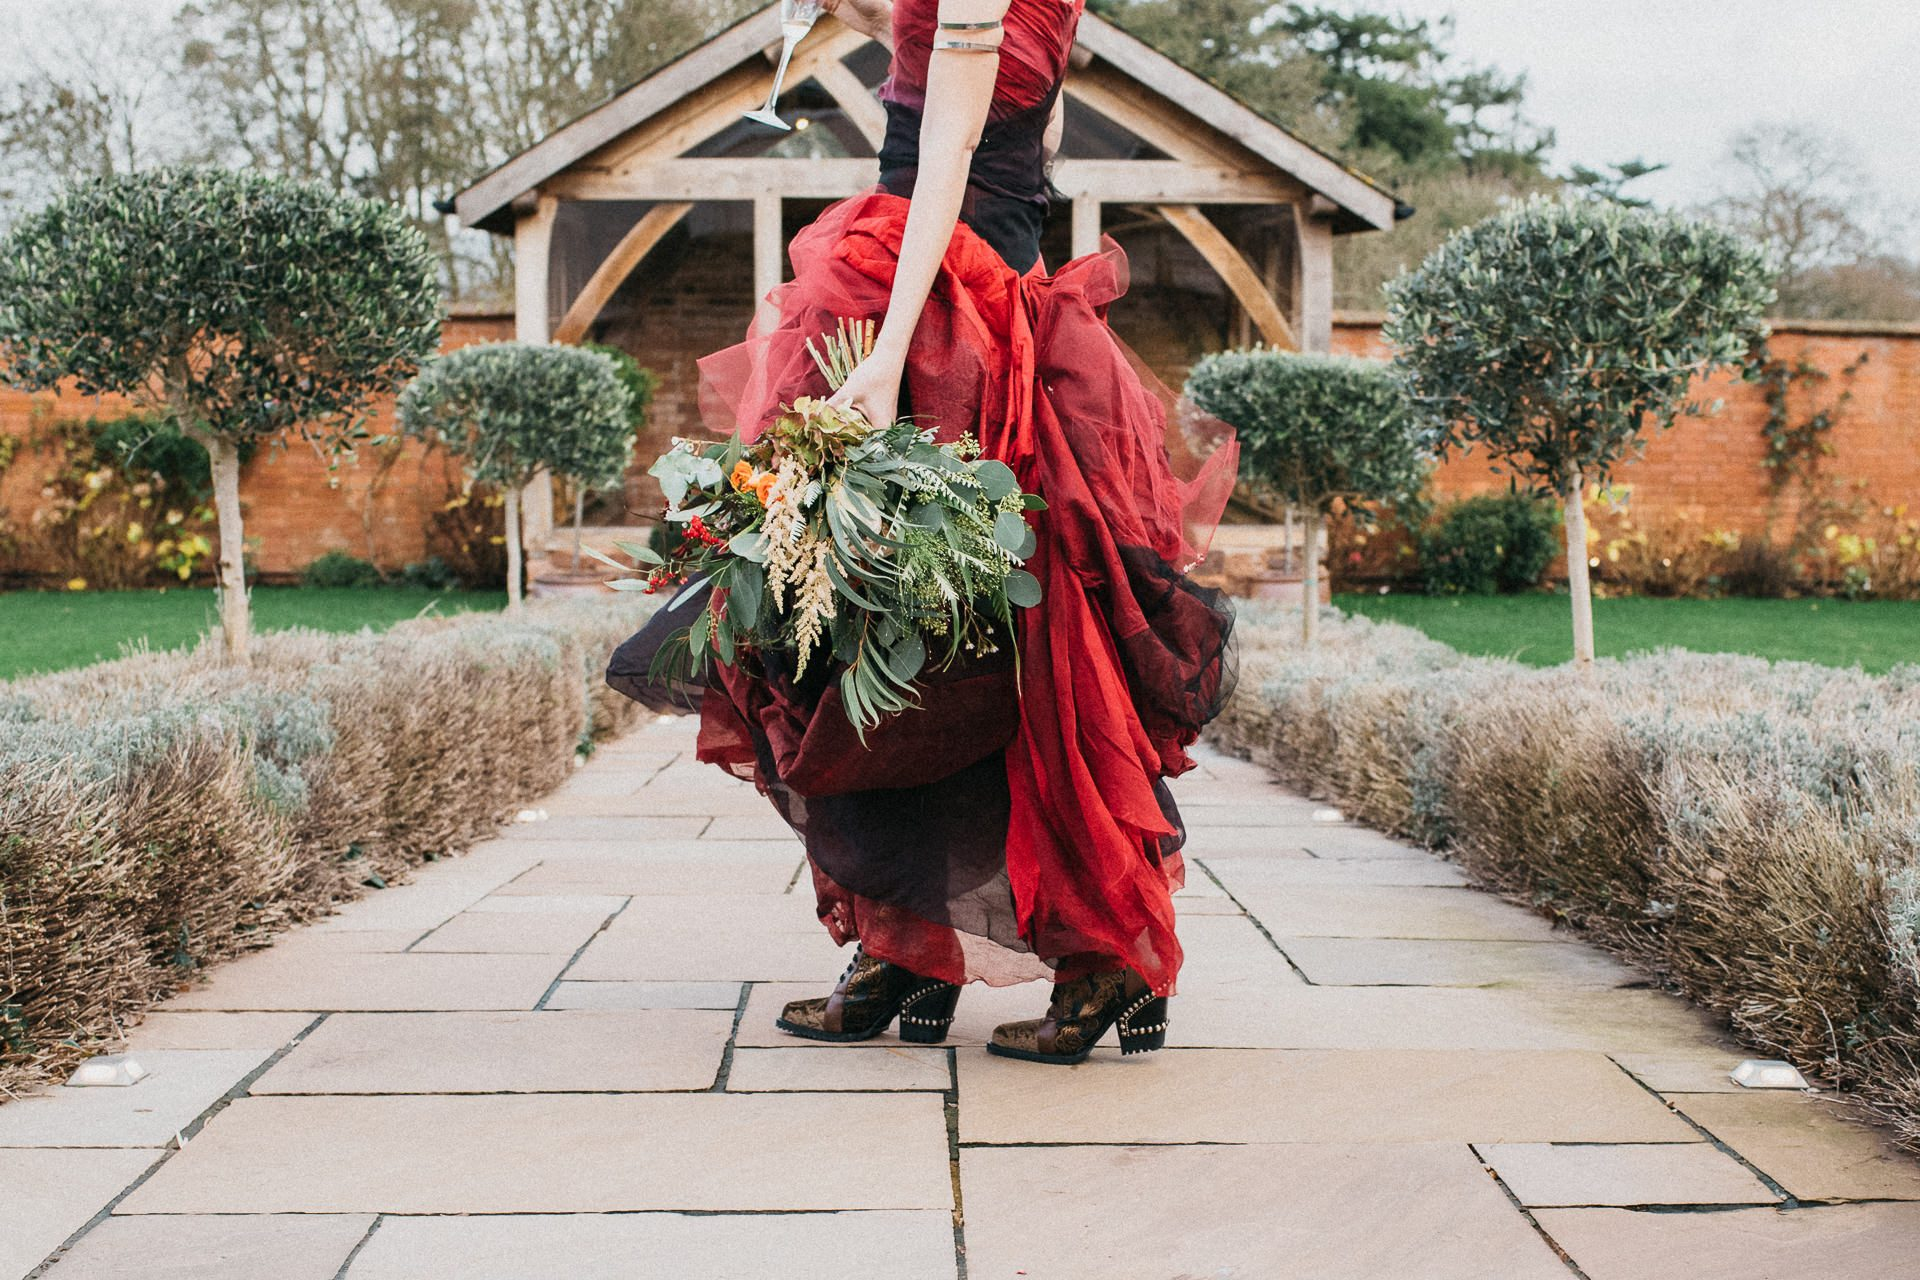 0019-DEVON-SOMERSET-WEDDING-PHOTOGRAPHER-0057-BEST-OF-2019-LOUISE-MAY-DEVON-SOMERSET-WEDDING-PHOTOGRAPHY-LM1_5722